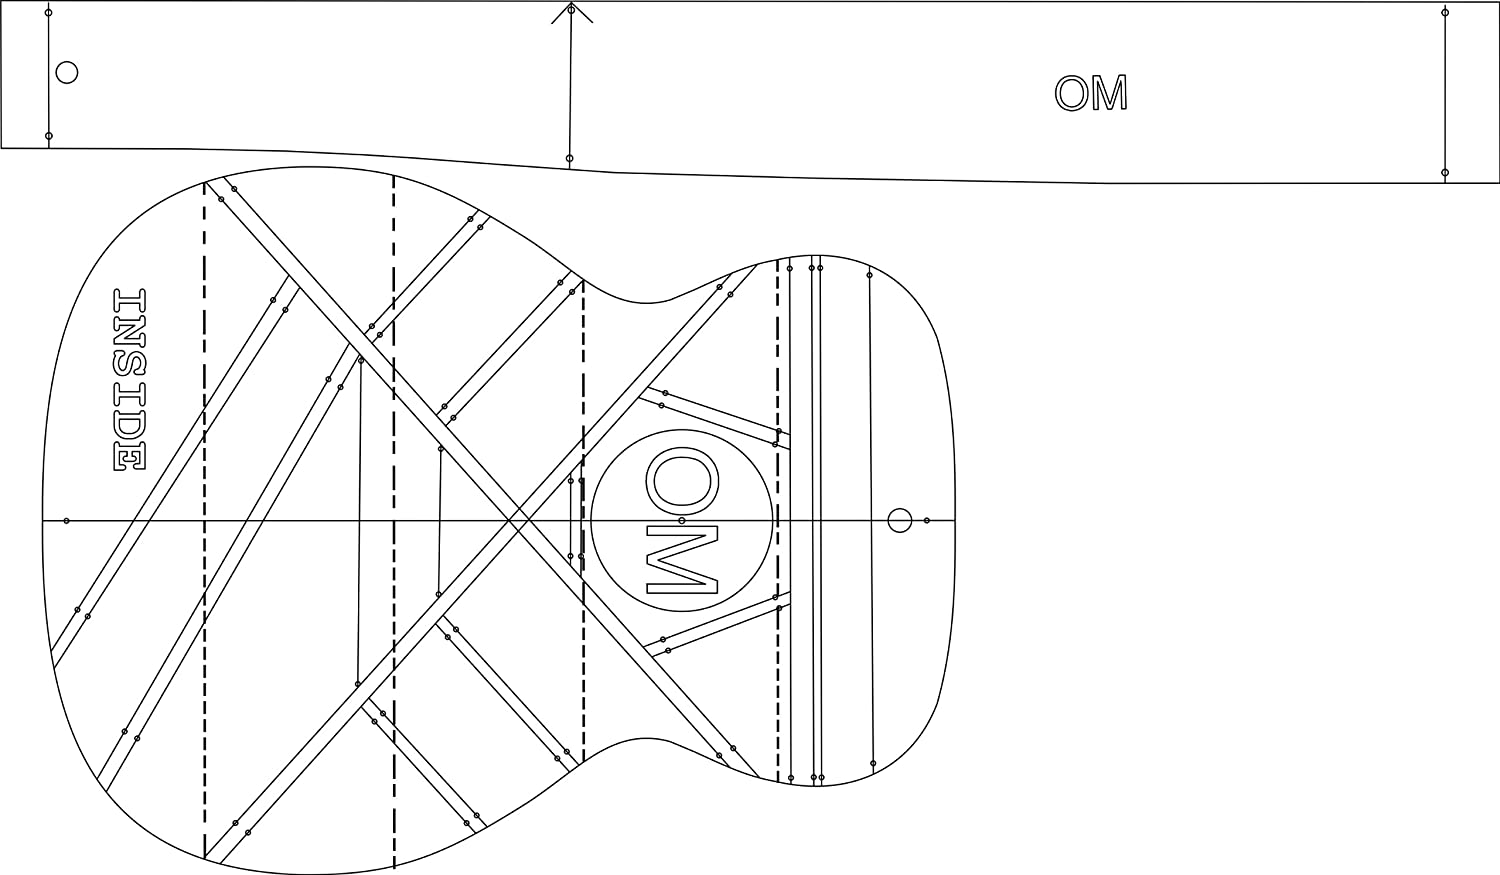 Amazon.com: OM Acoustic Guitar Layout Template - Guitar Building ...